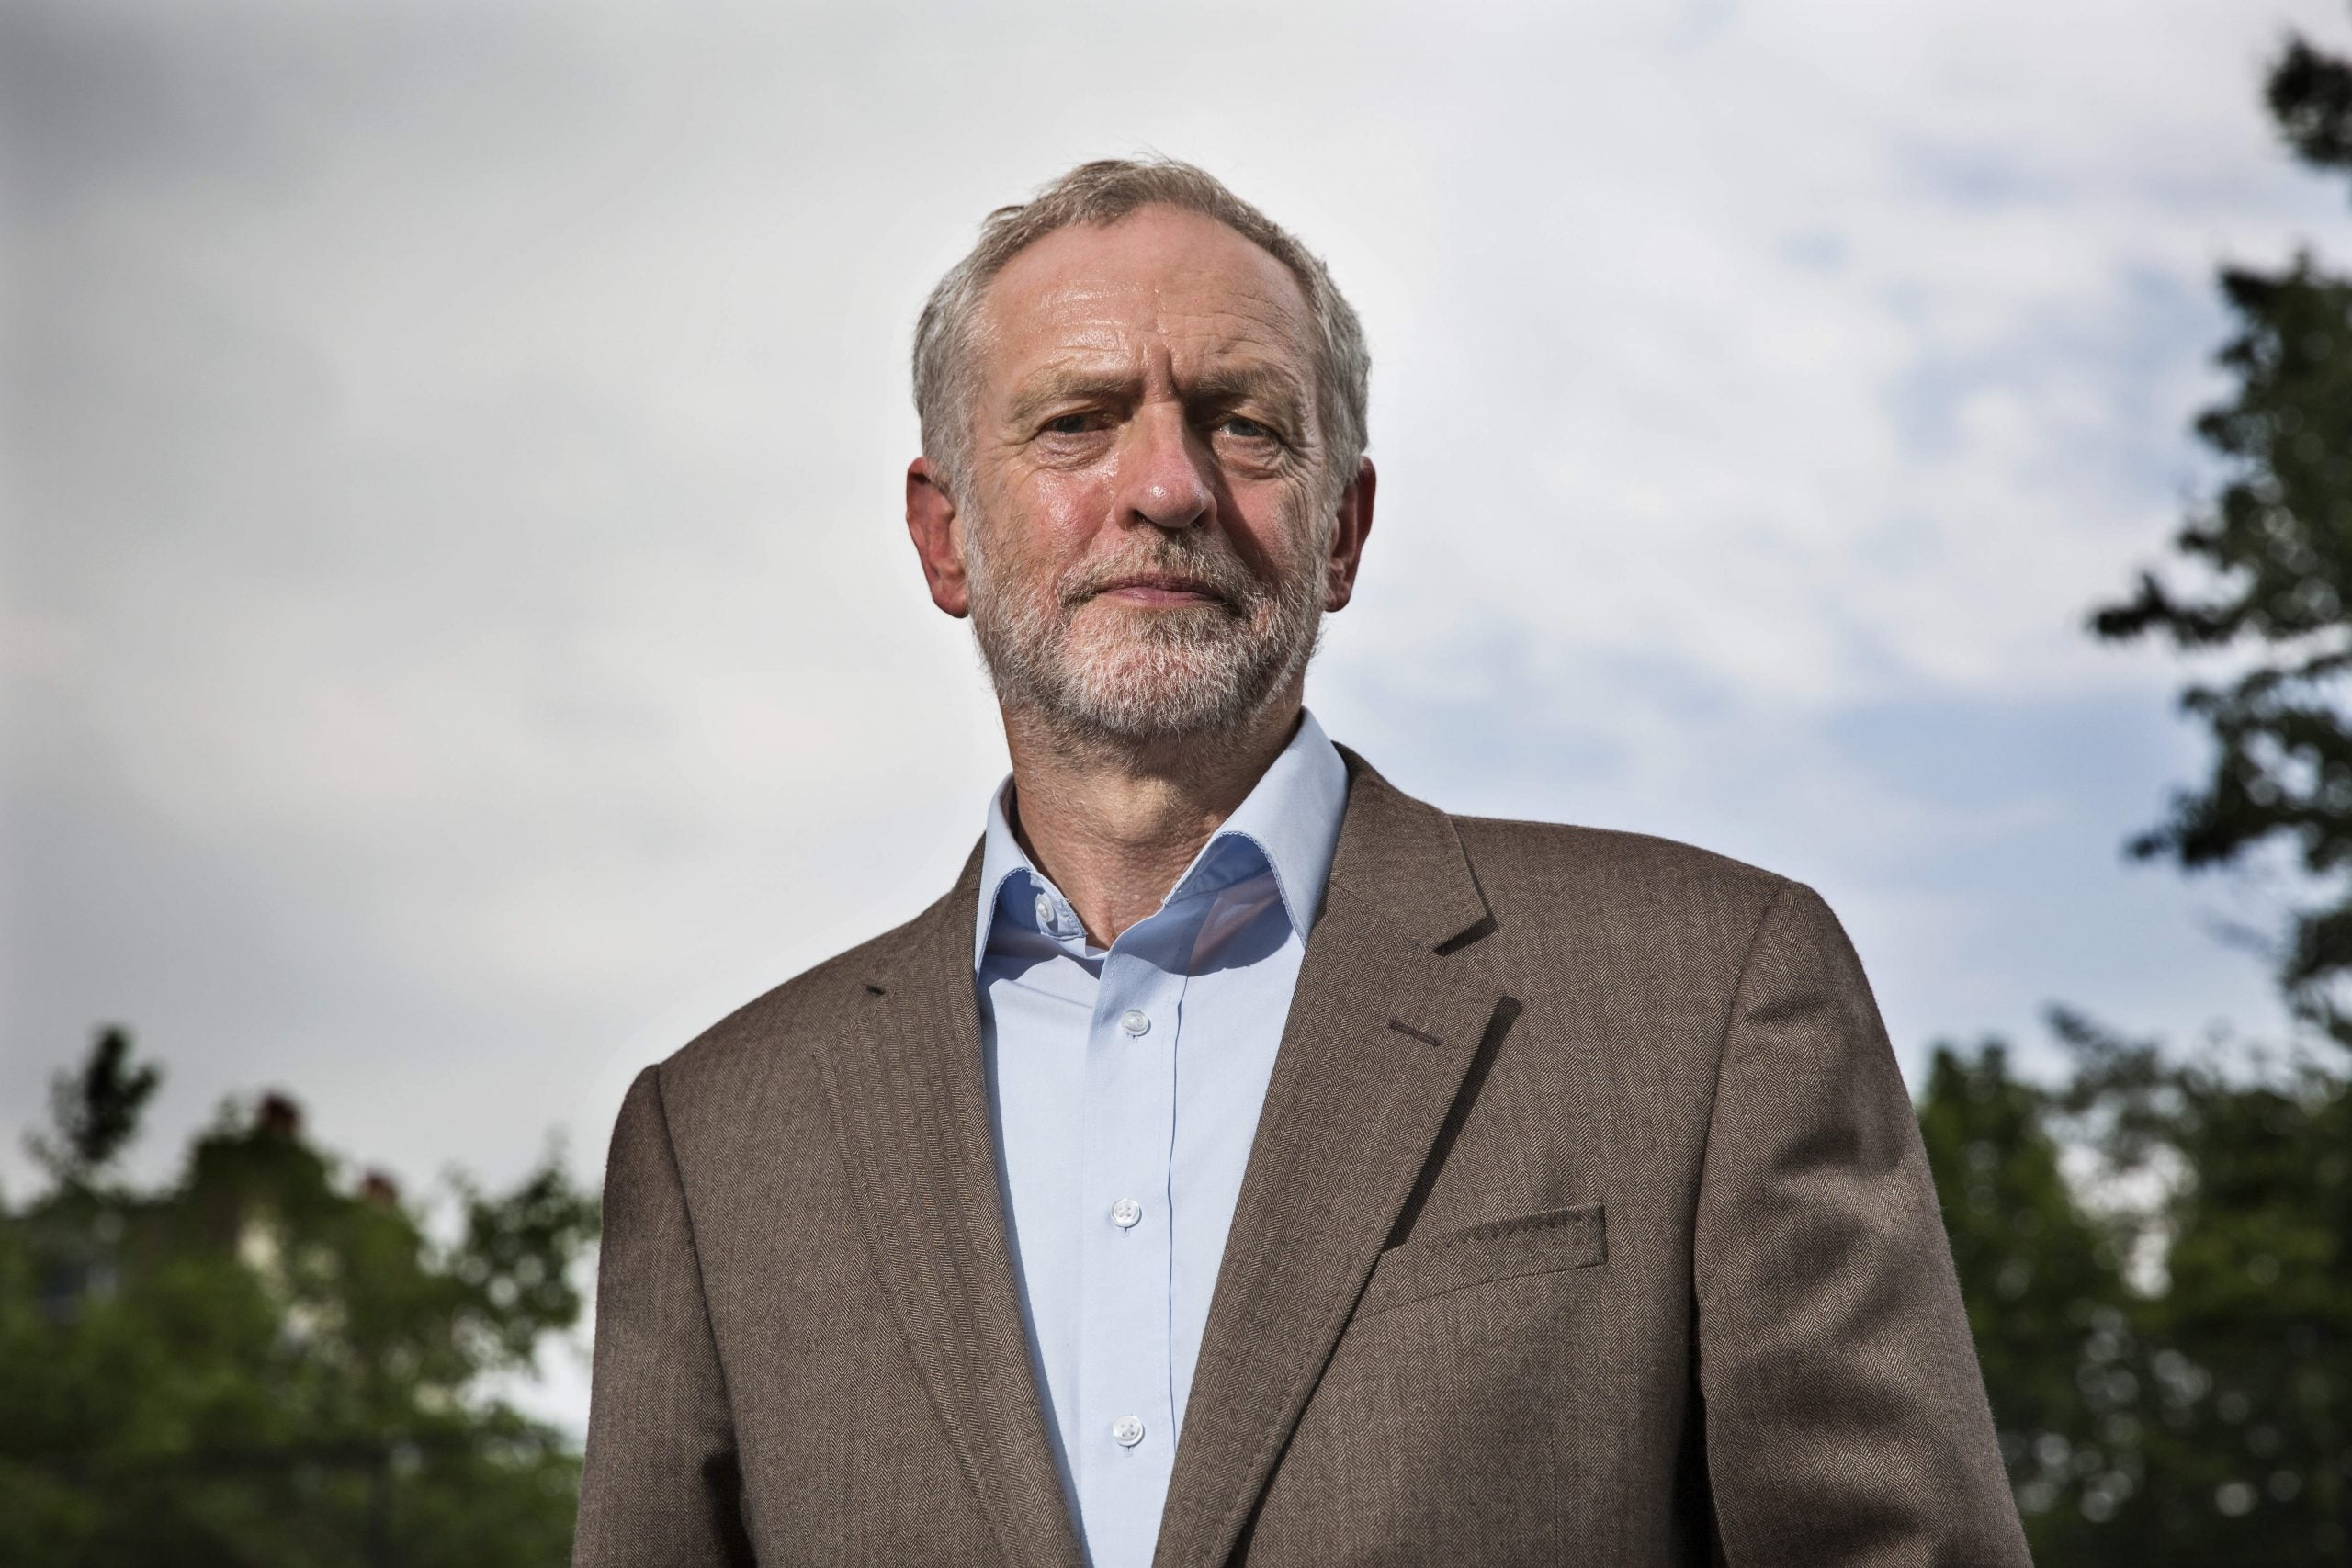 Jeremy Corbyn can capture Parliament - here's how to do it